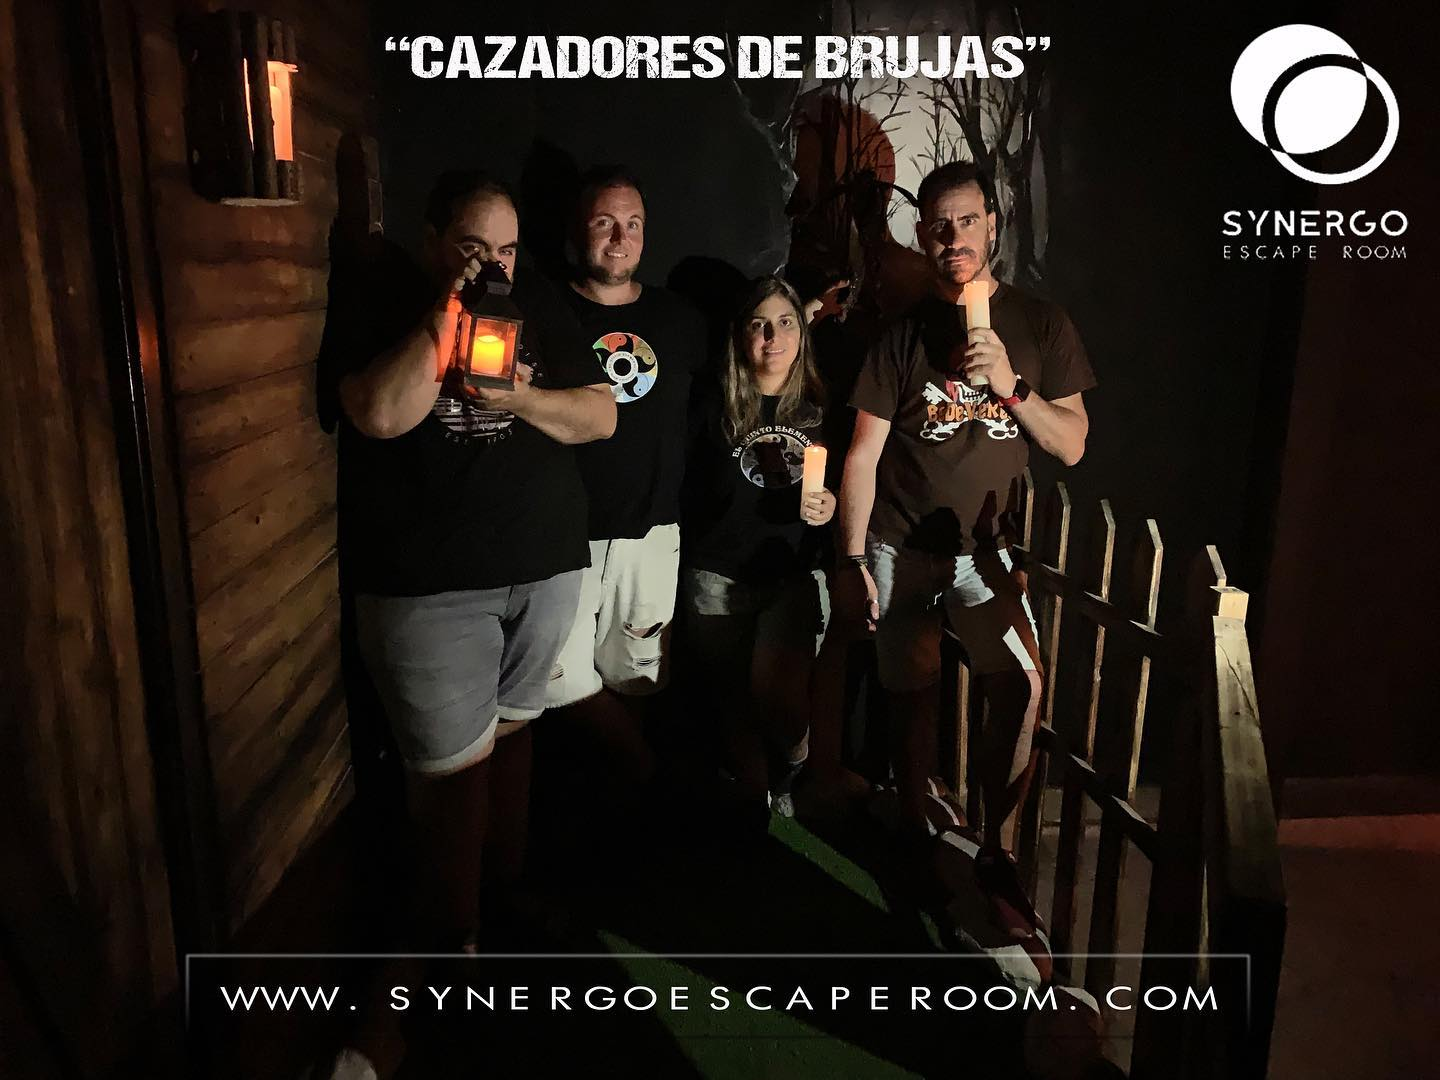 Synergo Escape Room